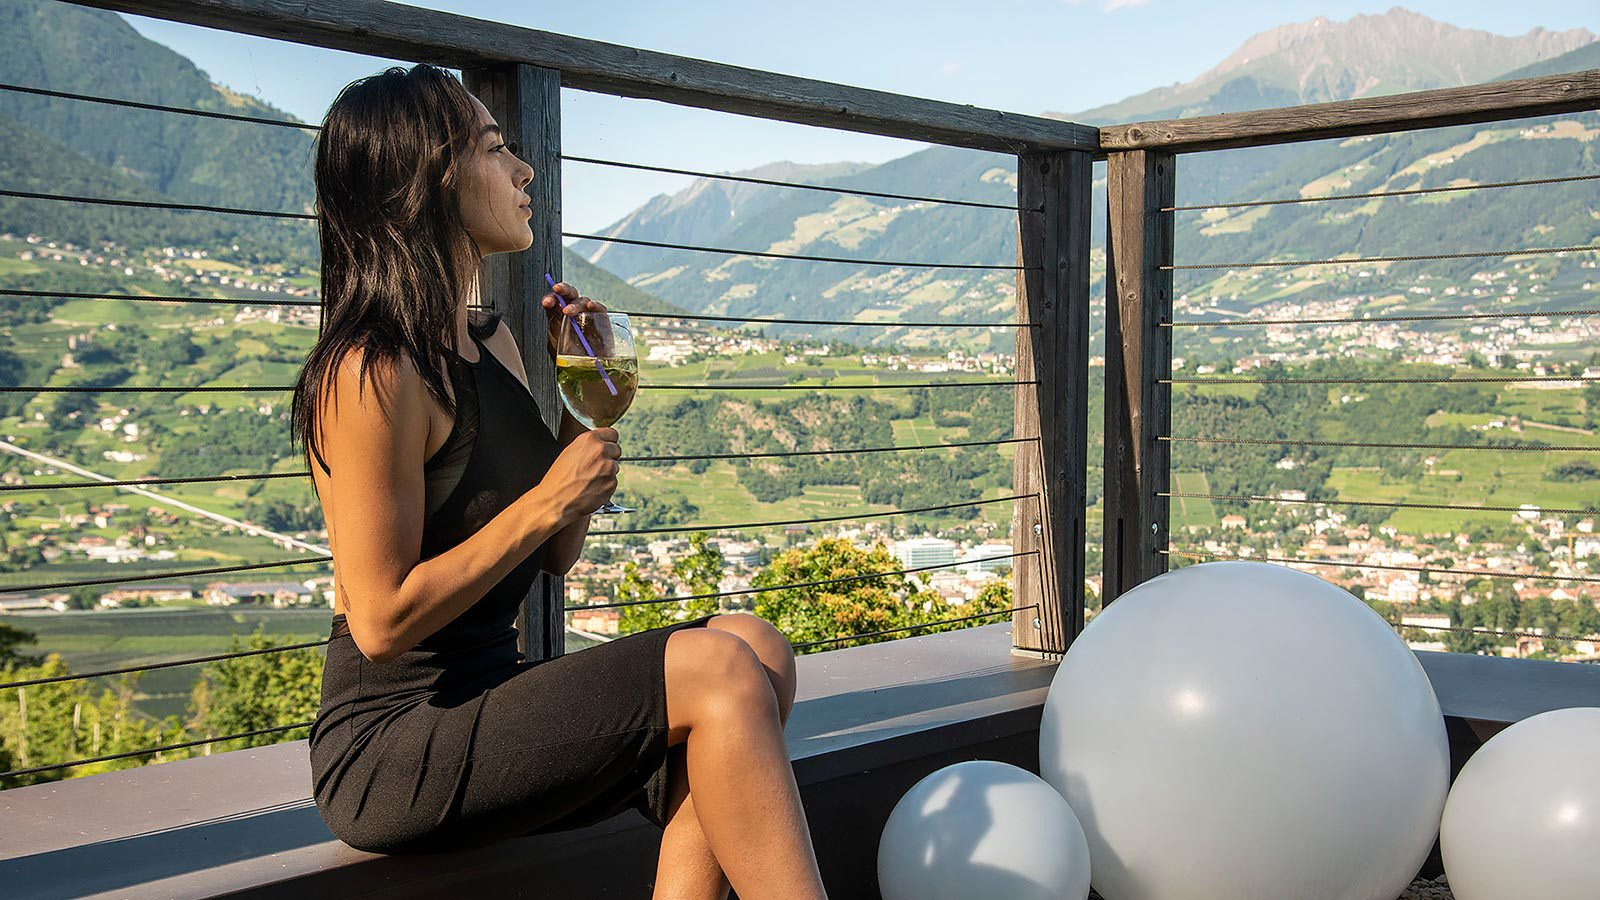 A girl drinks an aperitif on the terrace of the Residence Aqualis in Marlengo near Merano